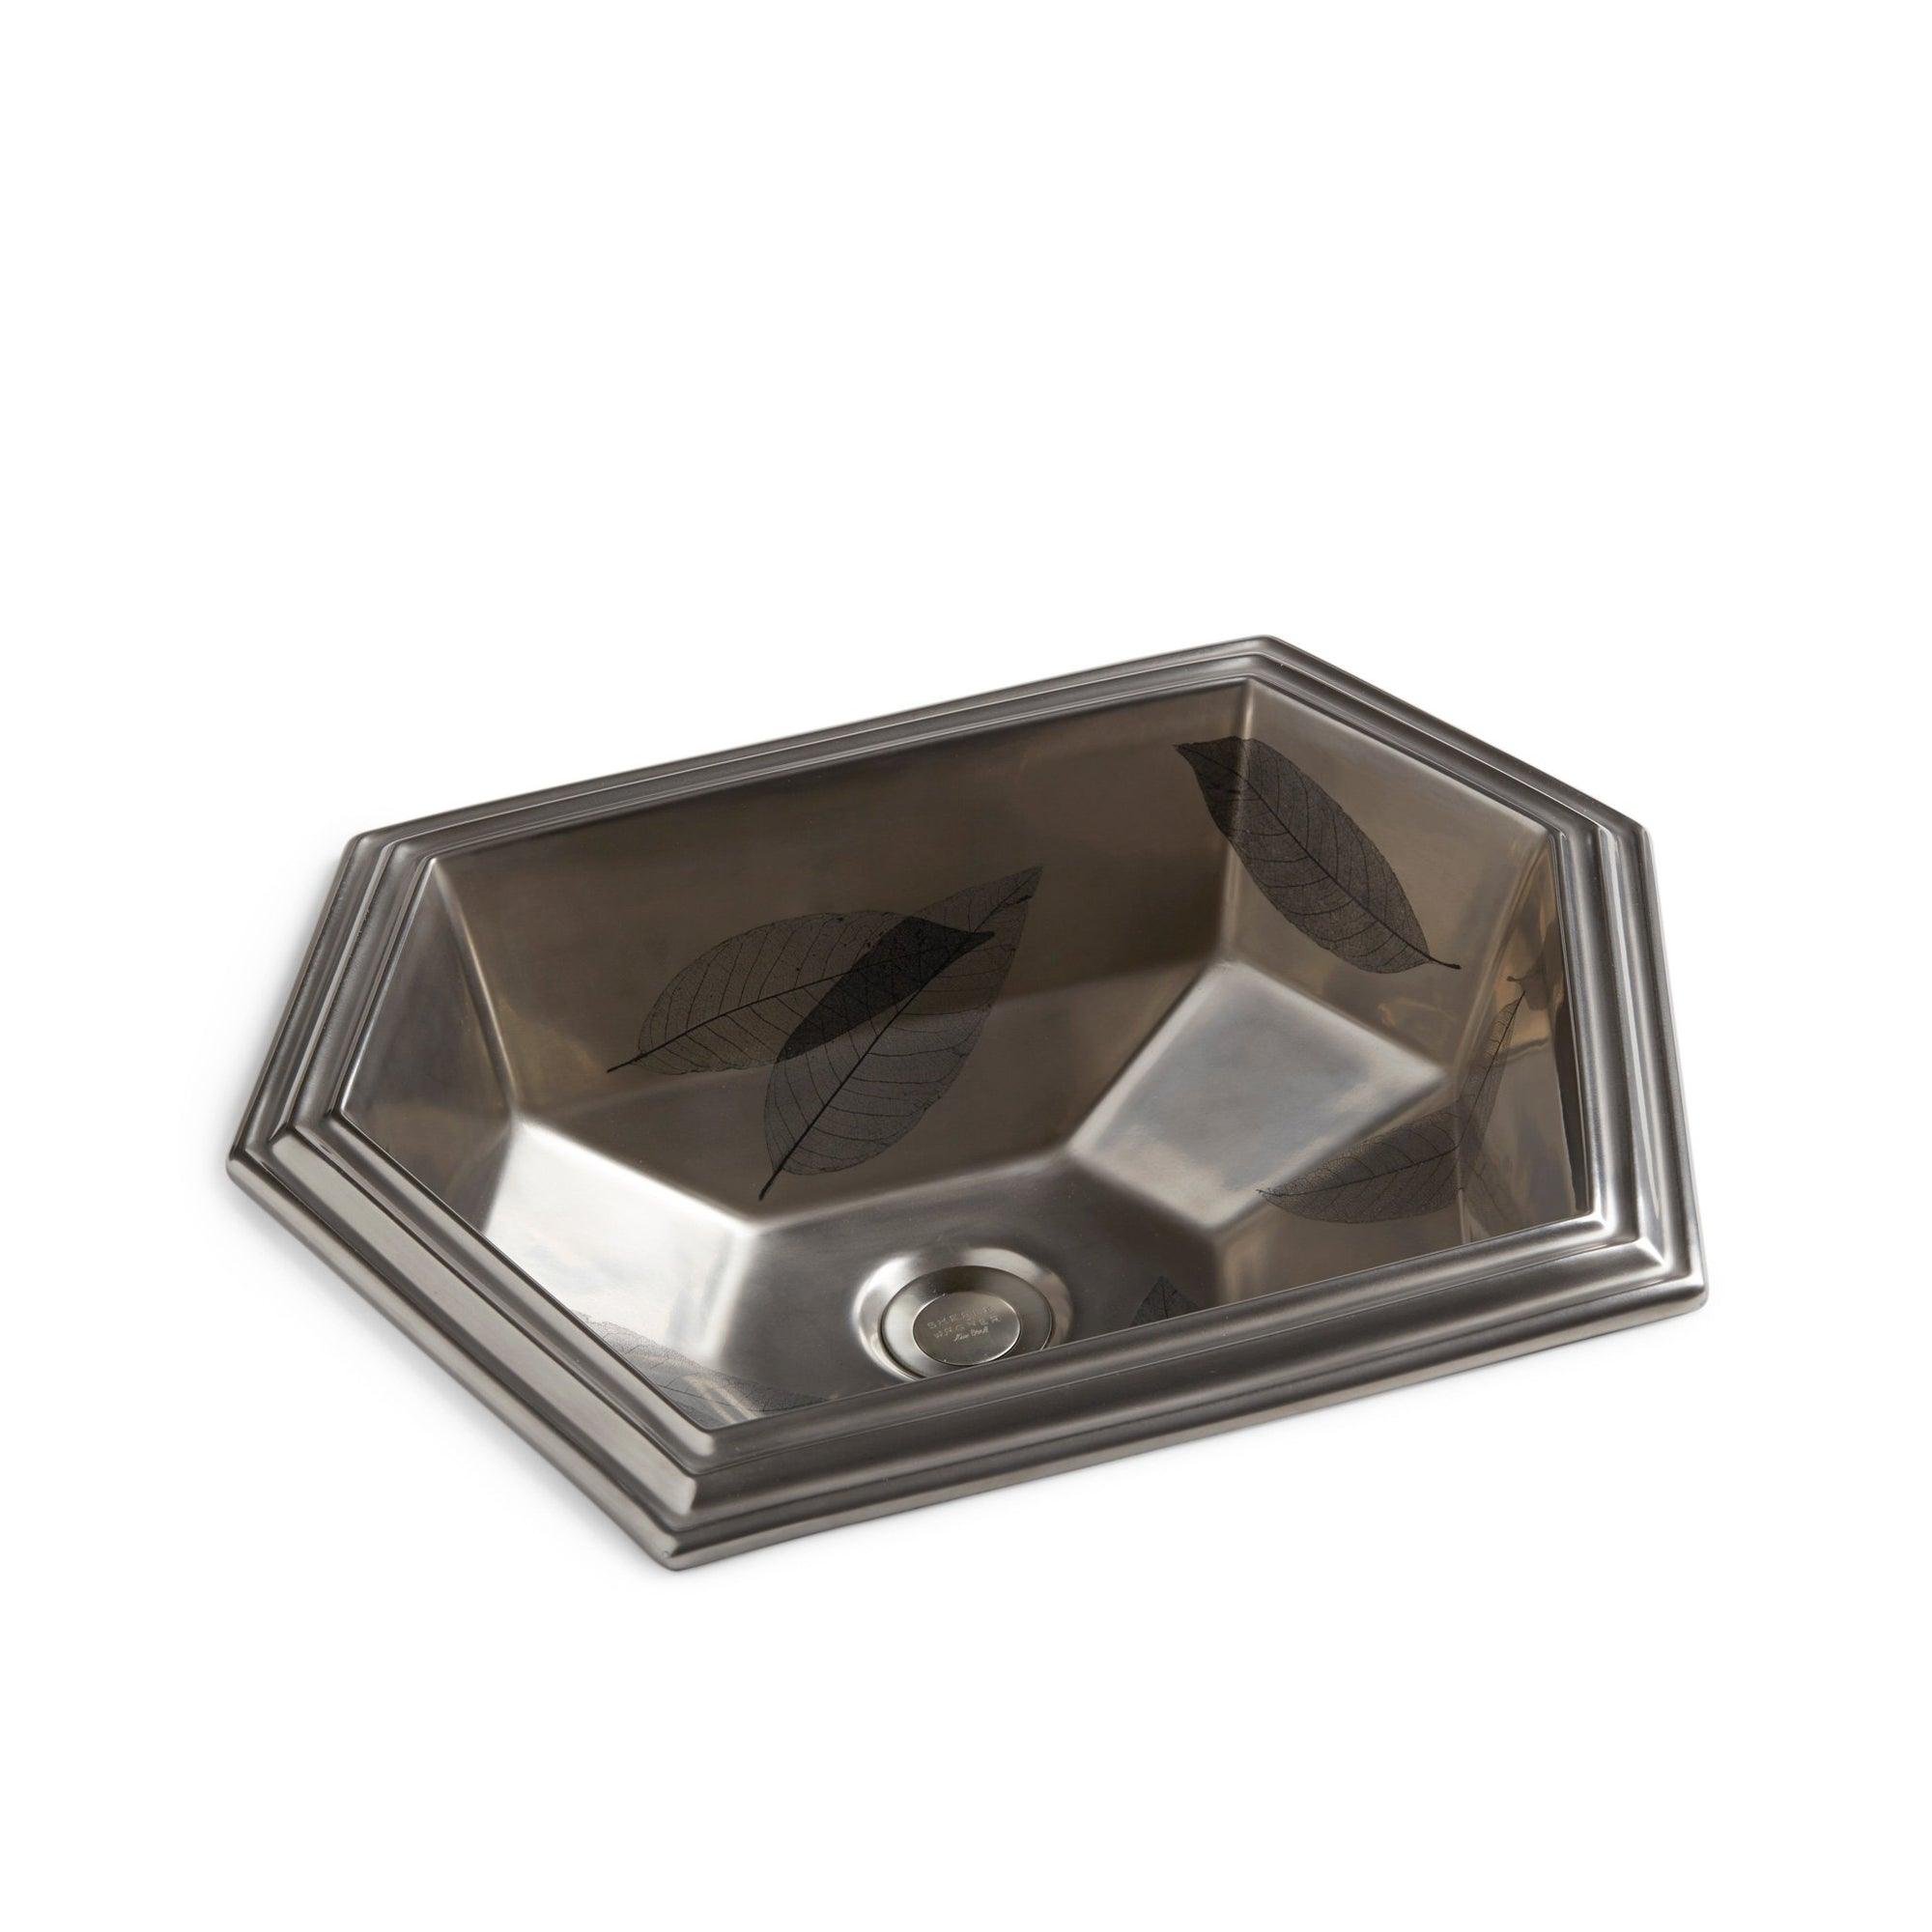 OE11-25BK-15PL Sherle Wagner International Black Random Leaves on on Burnished Platinum Modern Hexagon Ceramic Over Edge Sink